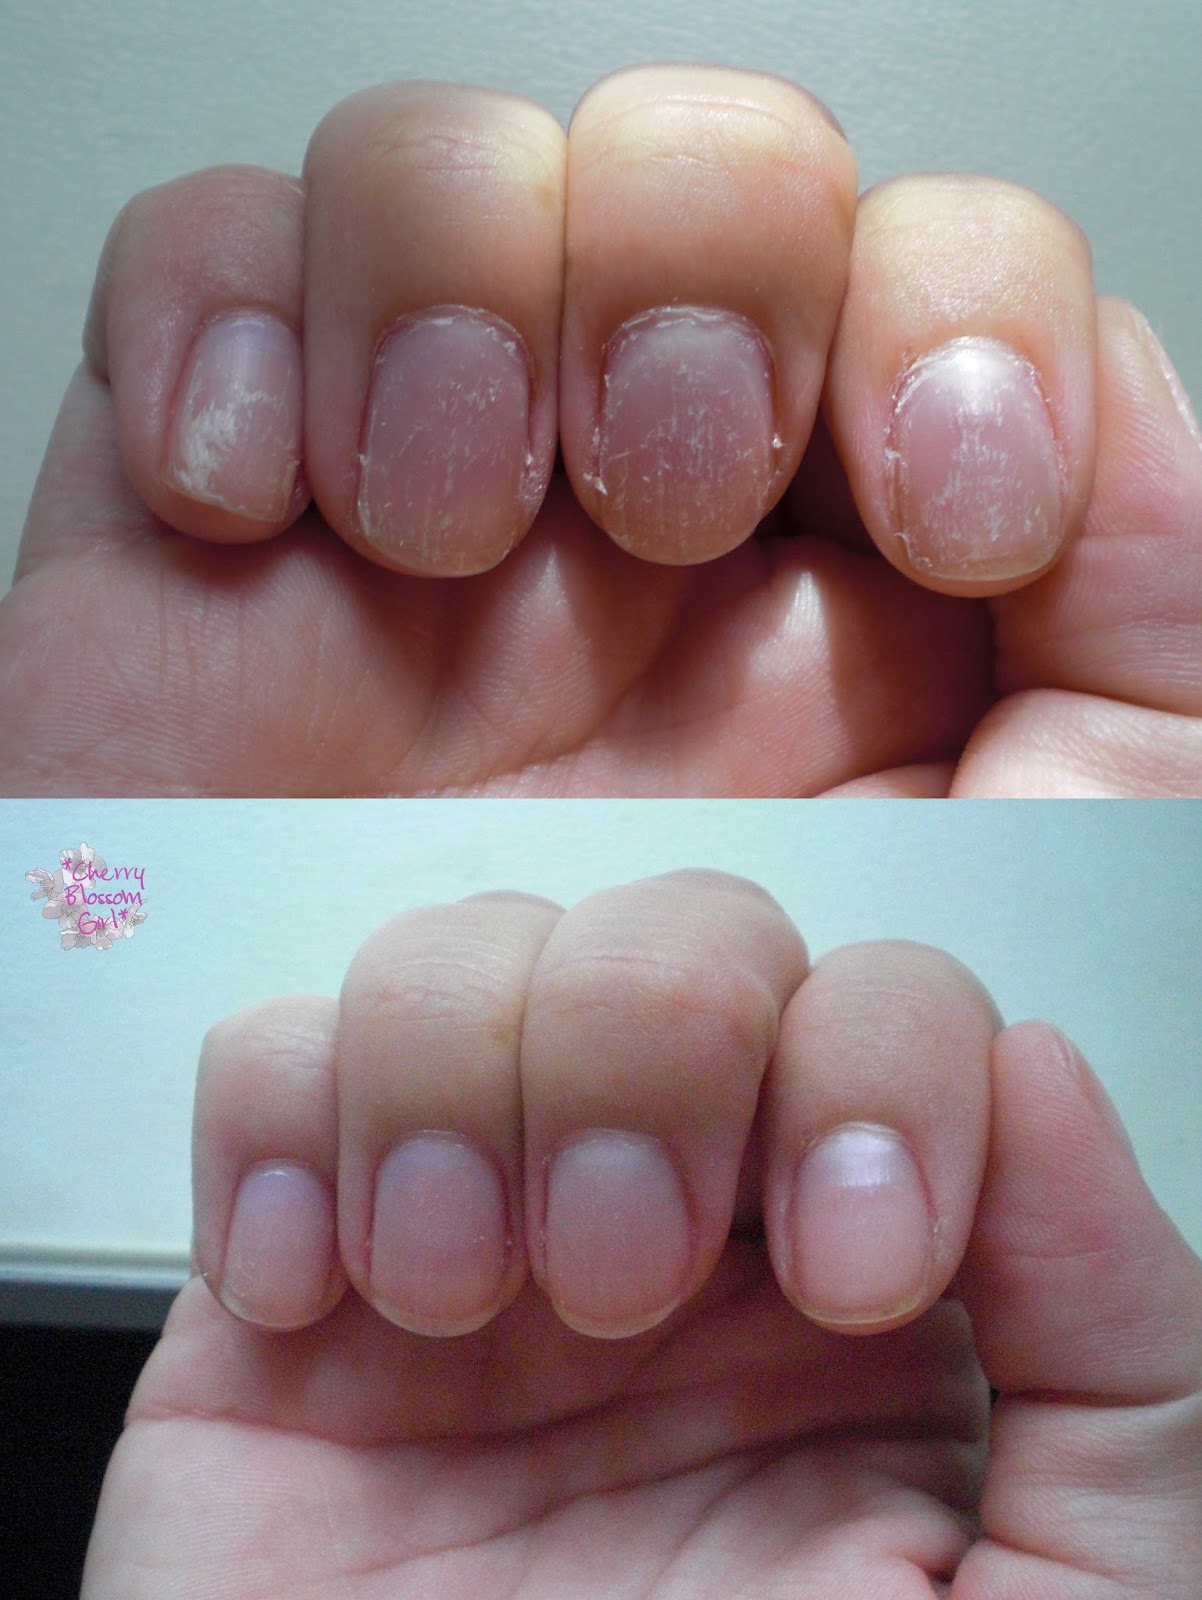 Cherry Blossom Girl: Essence Gel Nails @ Home. Ein Erfahrungsbericht.